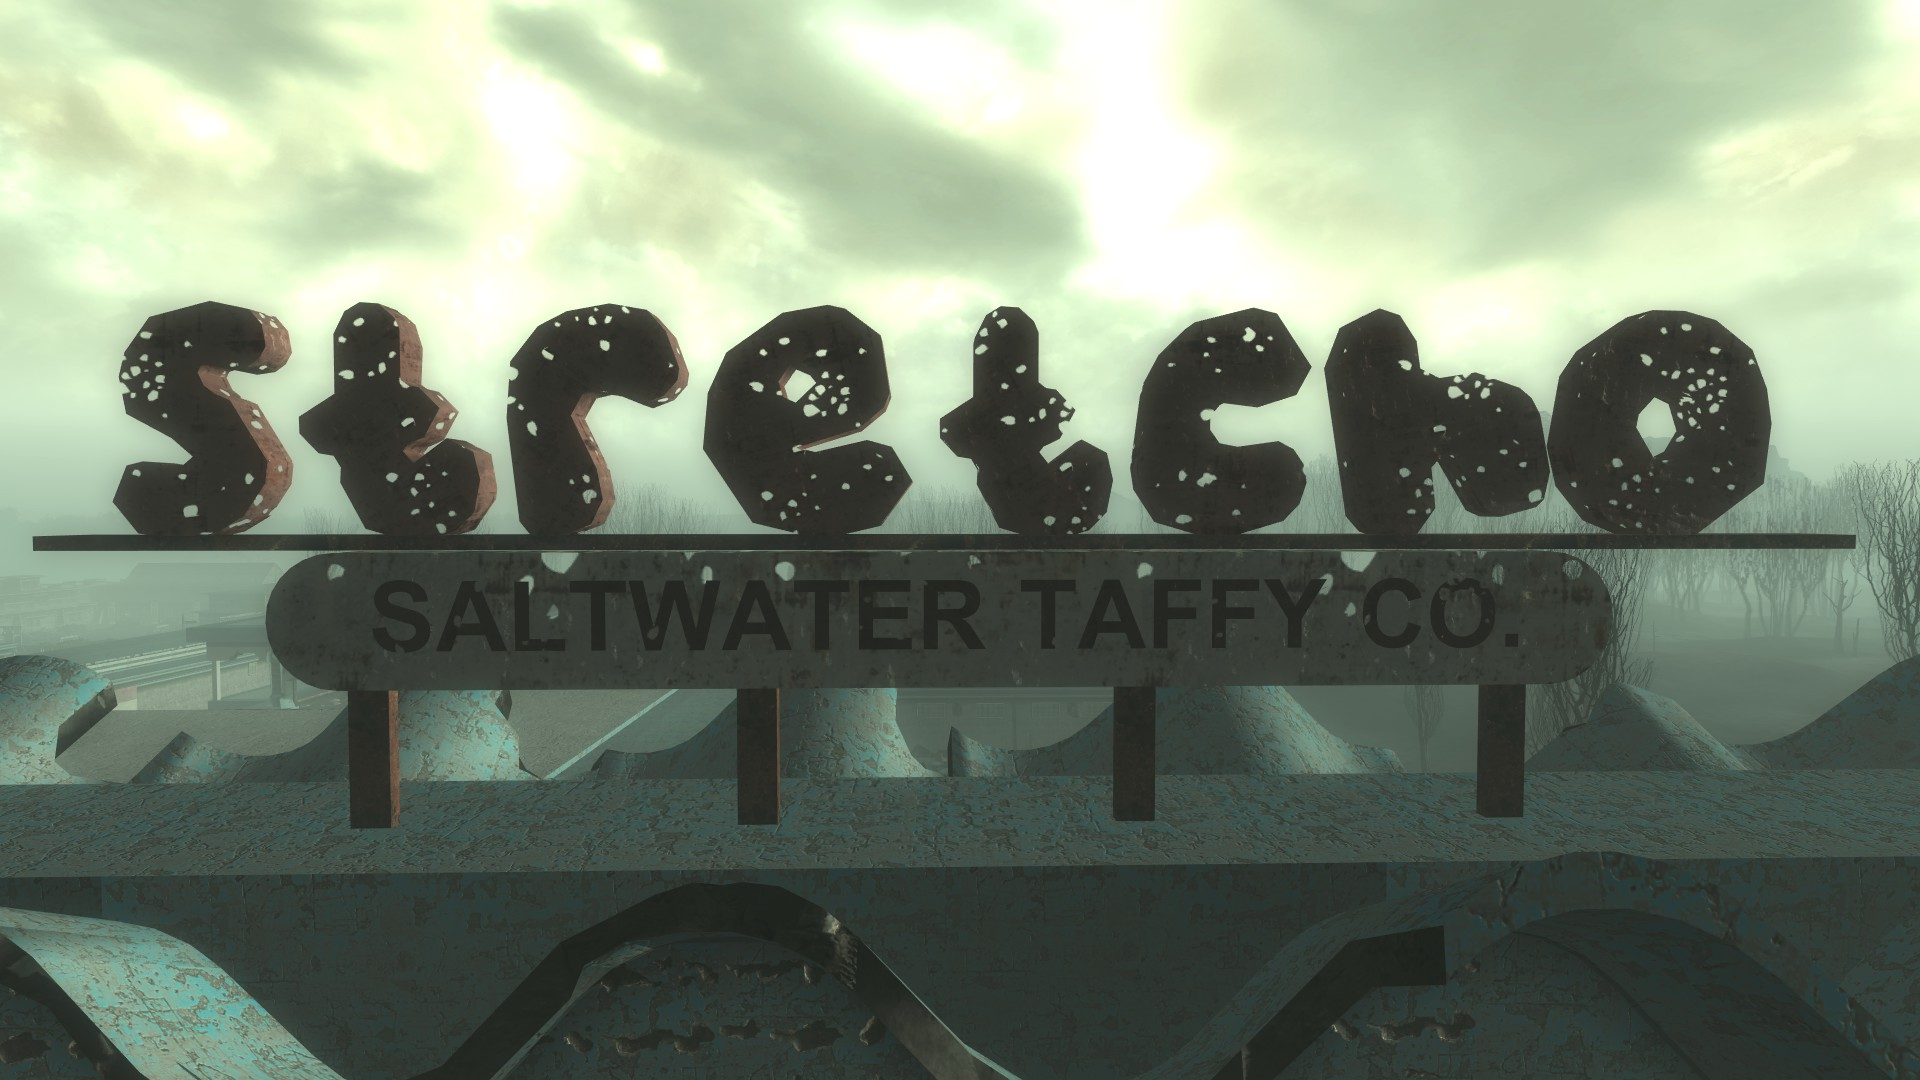 FO3PL Stretcho Saltwater Taffy company sign.jpg